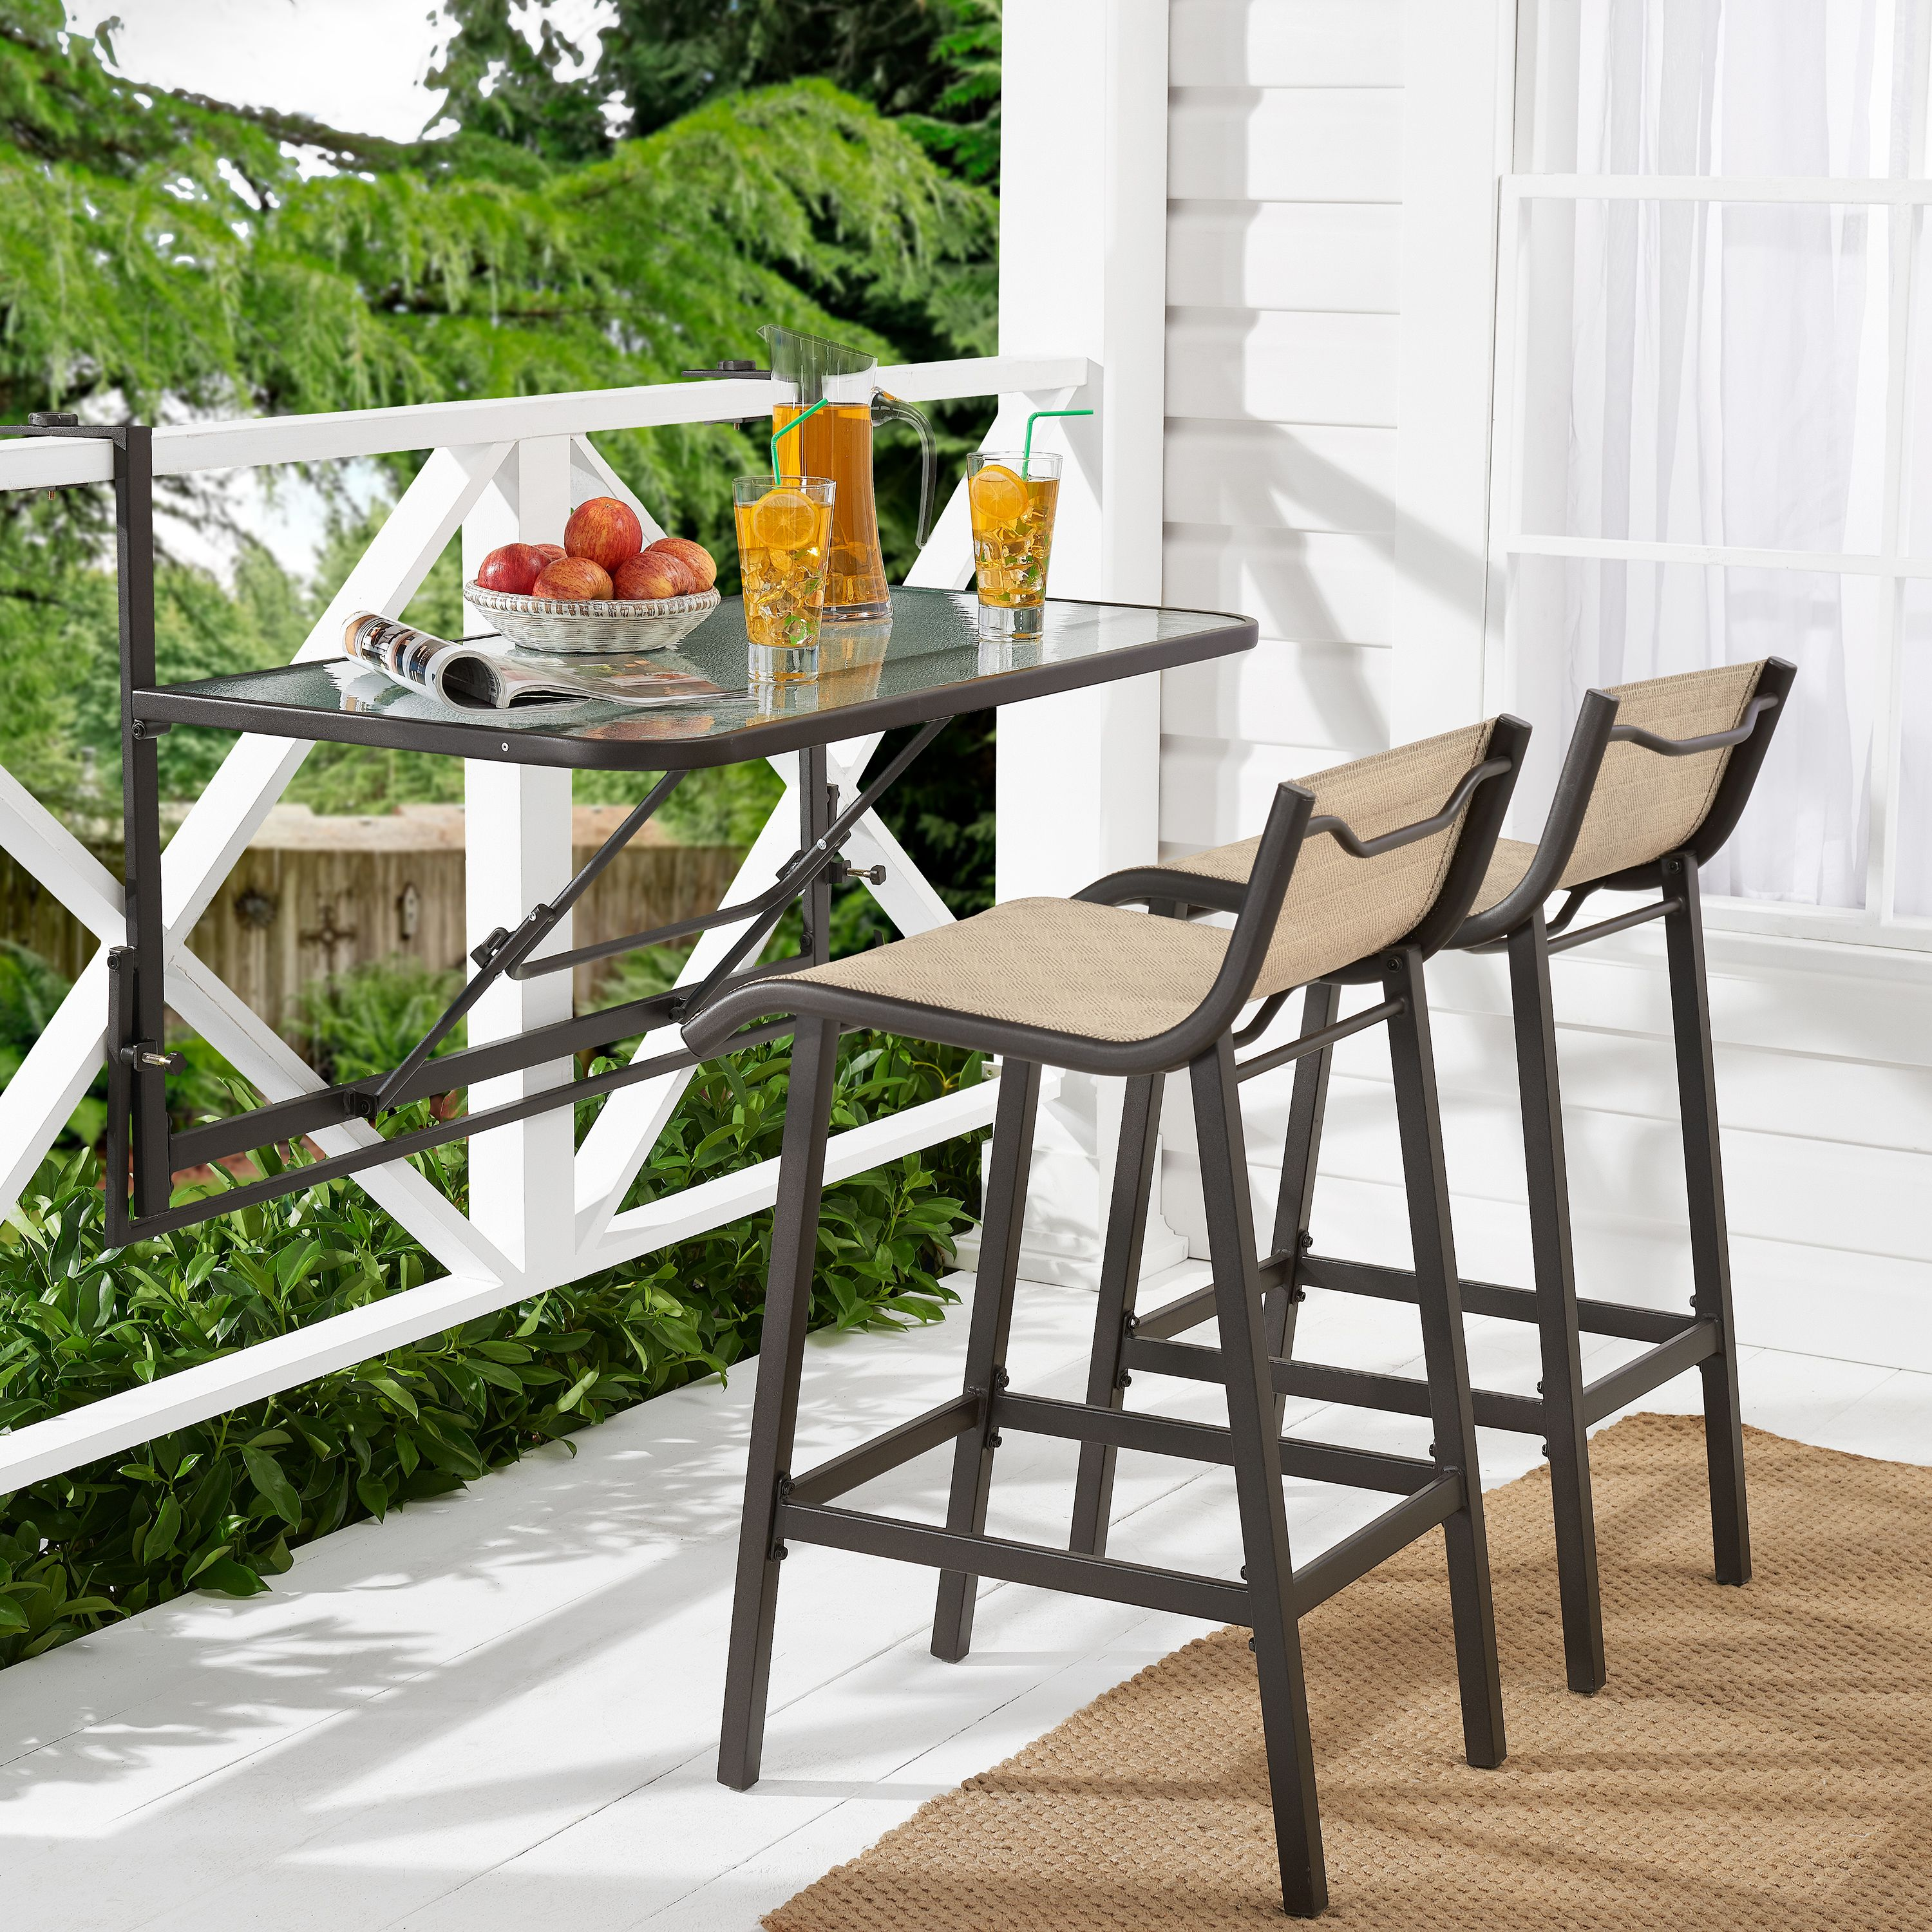 mainstays crowley park 3 piece outdoor bar set with fold down table